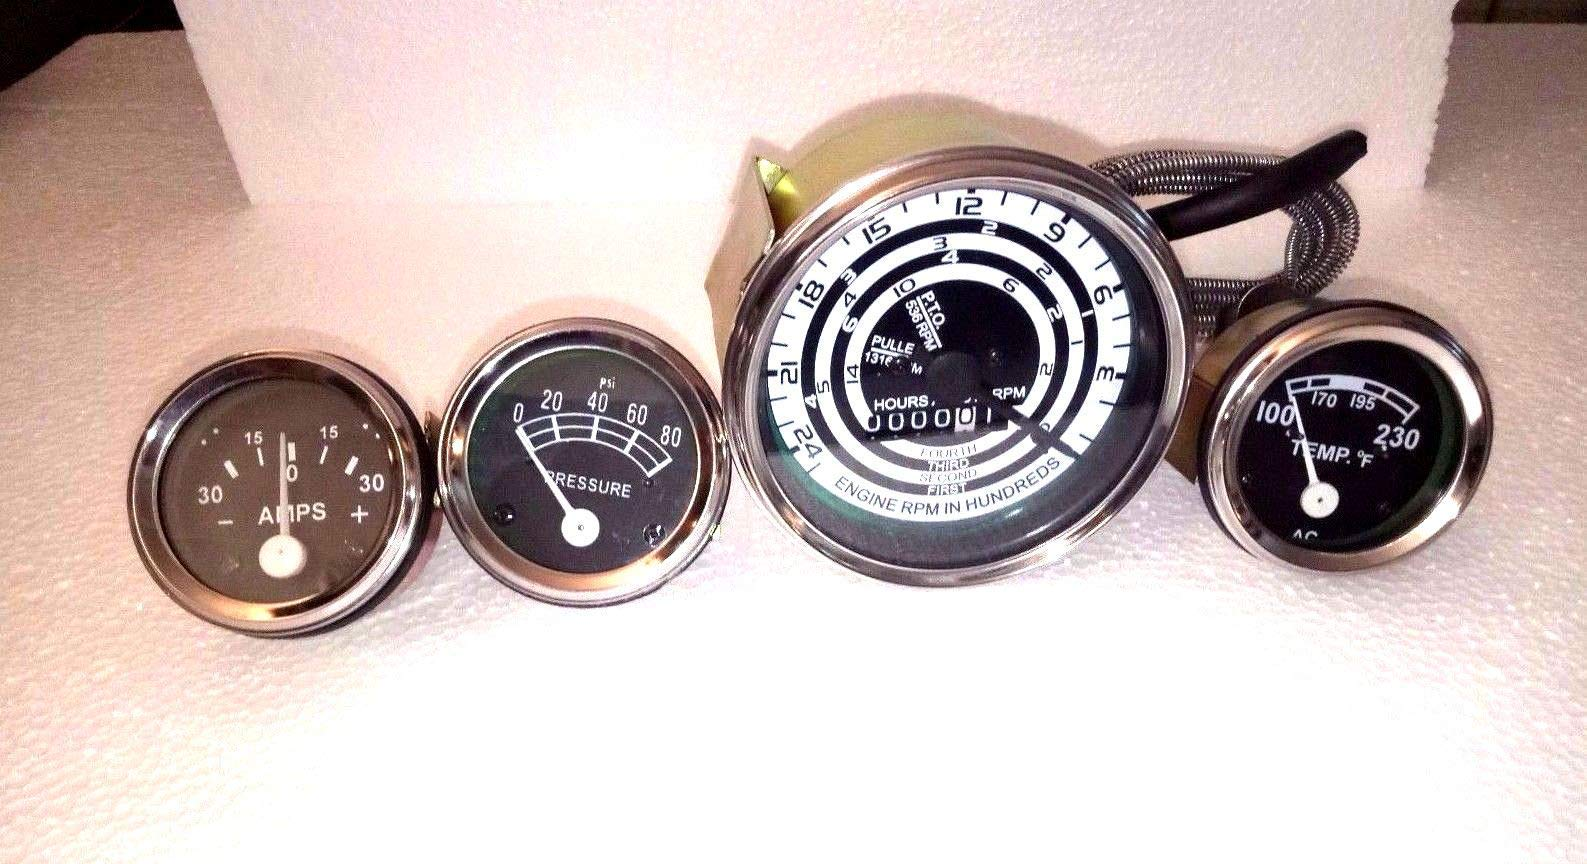 Ford Tractor Temp Amp Oil Tach Gauge Set for Mod 600 700 800 900 1800 2000 4000 in Chrome bezel